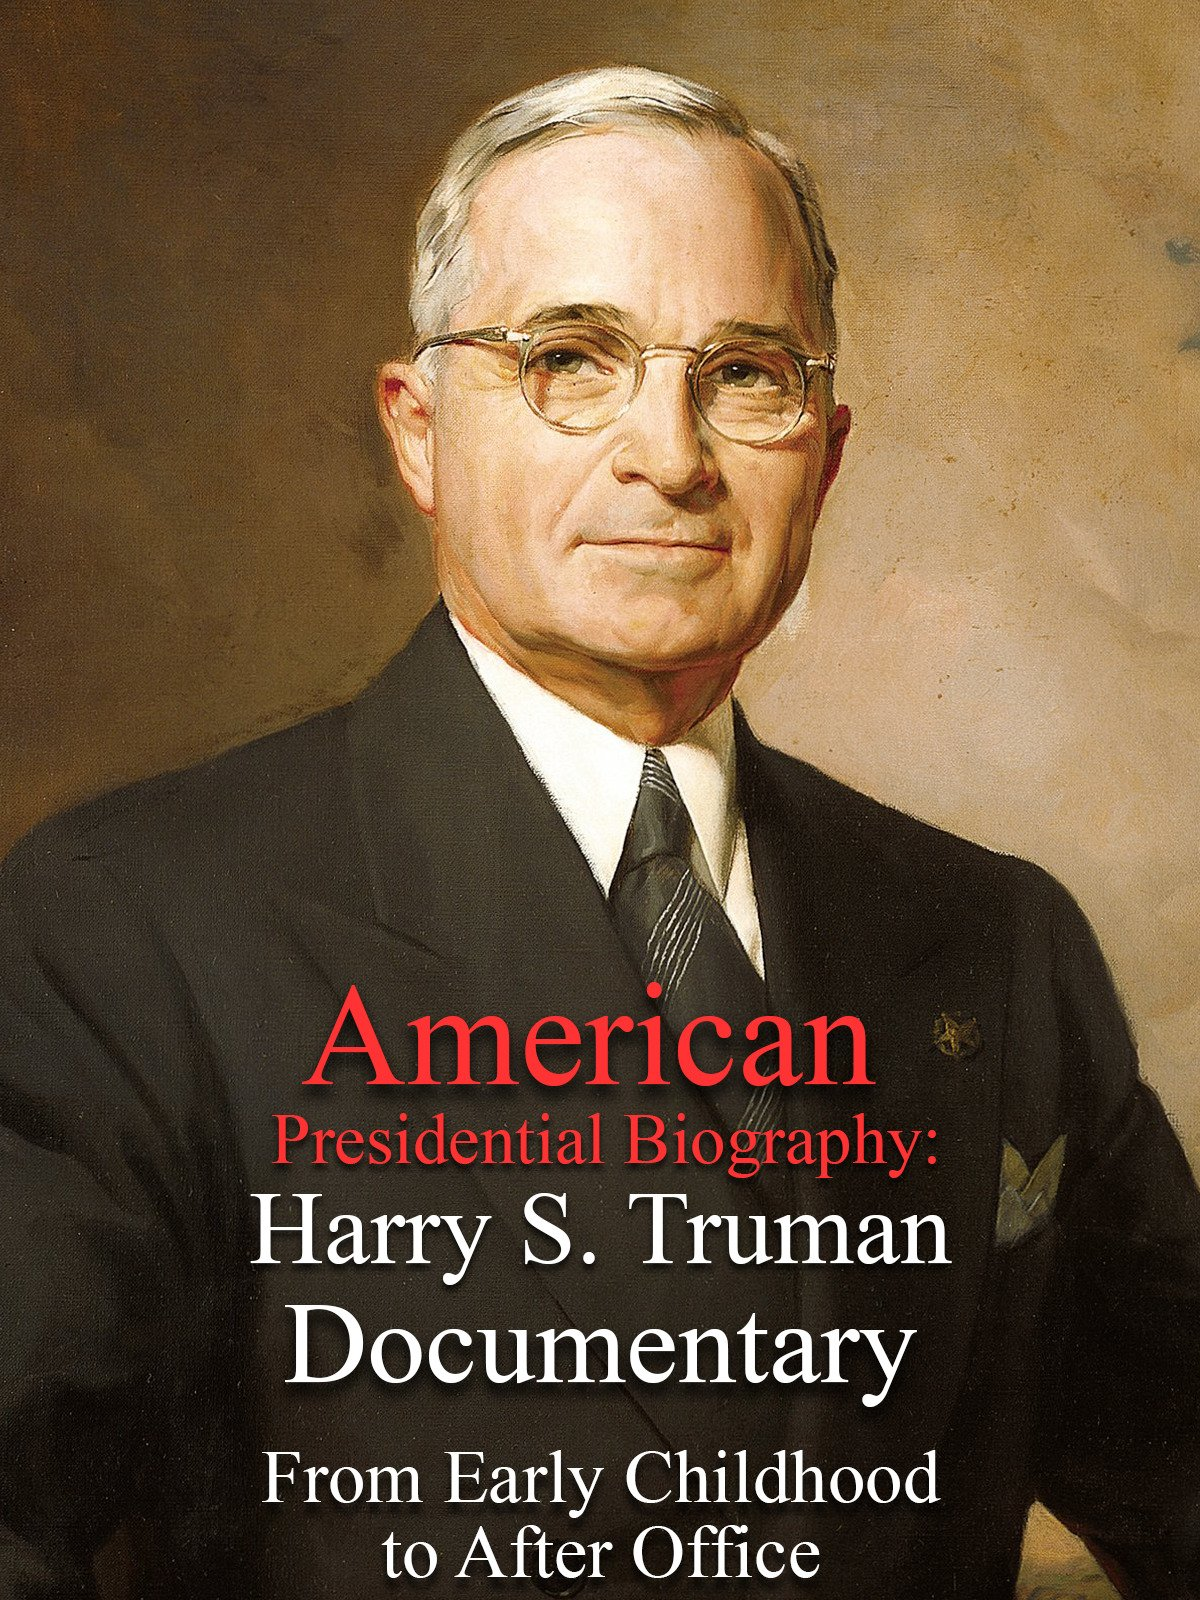 American Presidential Biography: Harry S. Truman Documentary From Early Childhood to After Office